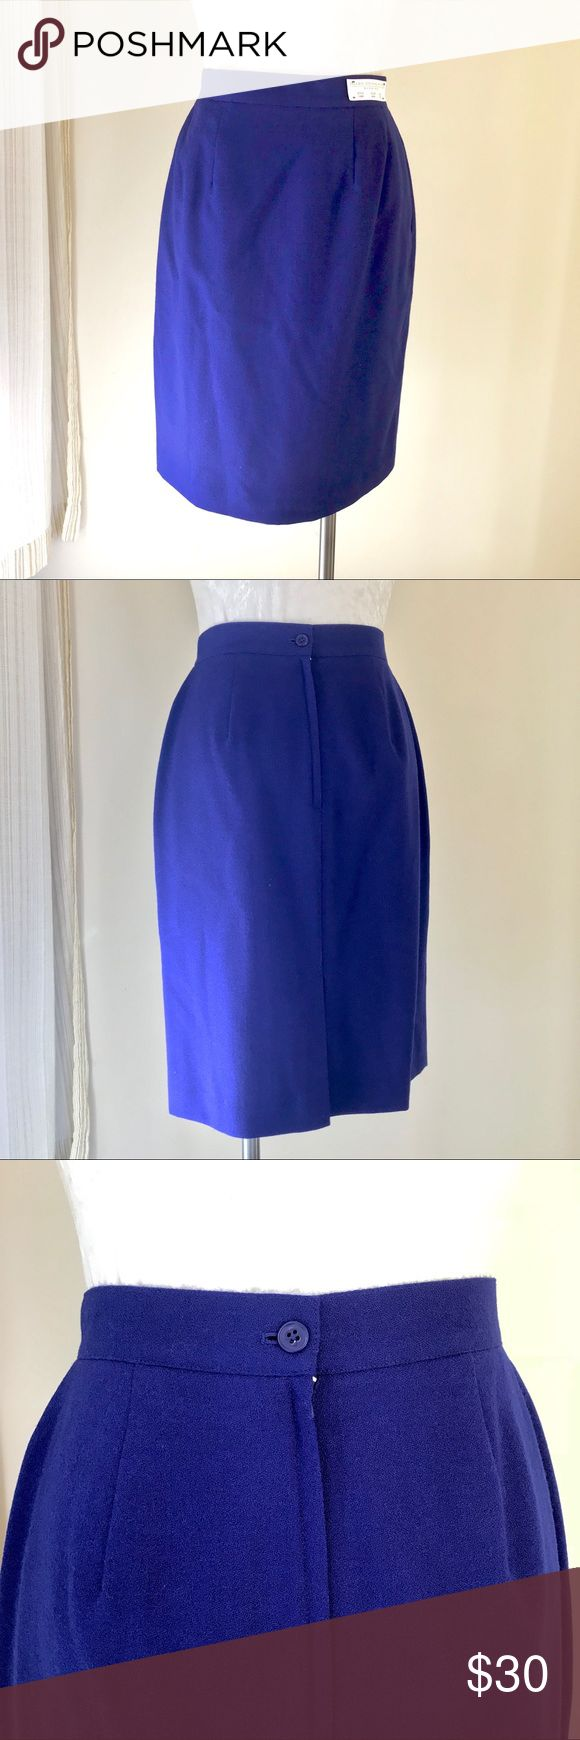 """Valerie Stevens Petites blue wool pencil skirt Valerie Stevens Petites blue wool pencil skirt  New with tags NWT  Bright cobalt/royal blue pencil skirt. Fully lined, lightweight wool.   Marked size 10P  Waist 27.5""""  More measurements available on request.  See my closet for matching coat (6P)! I'm happy to discount when bundled together. This listing is for the skirt only. Valerie Stevens Skirts Pencil"""